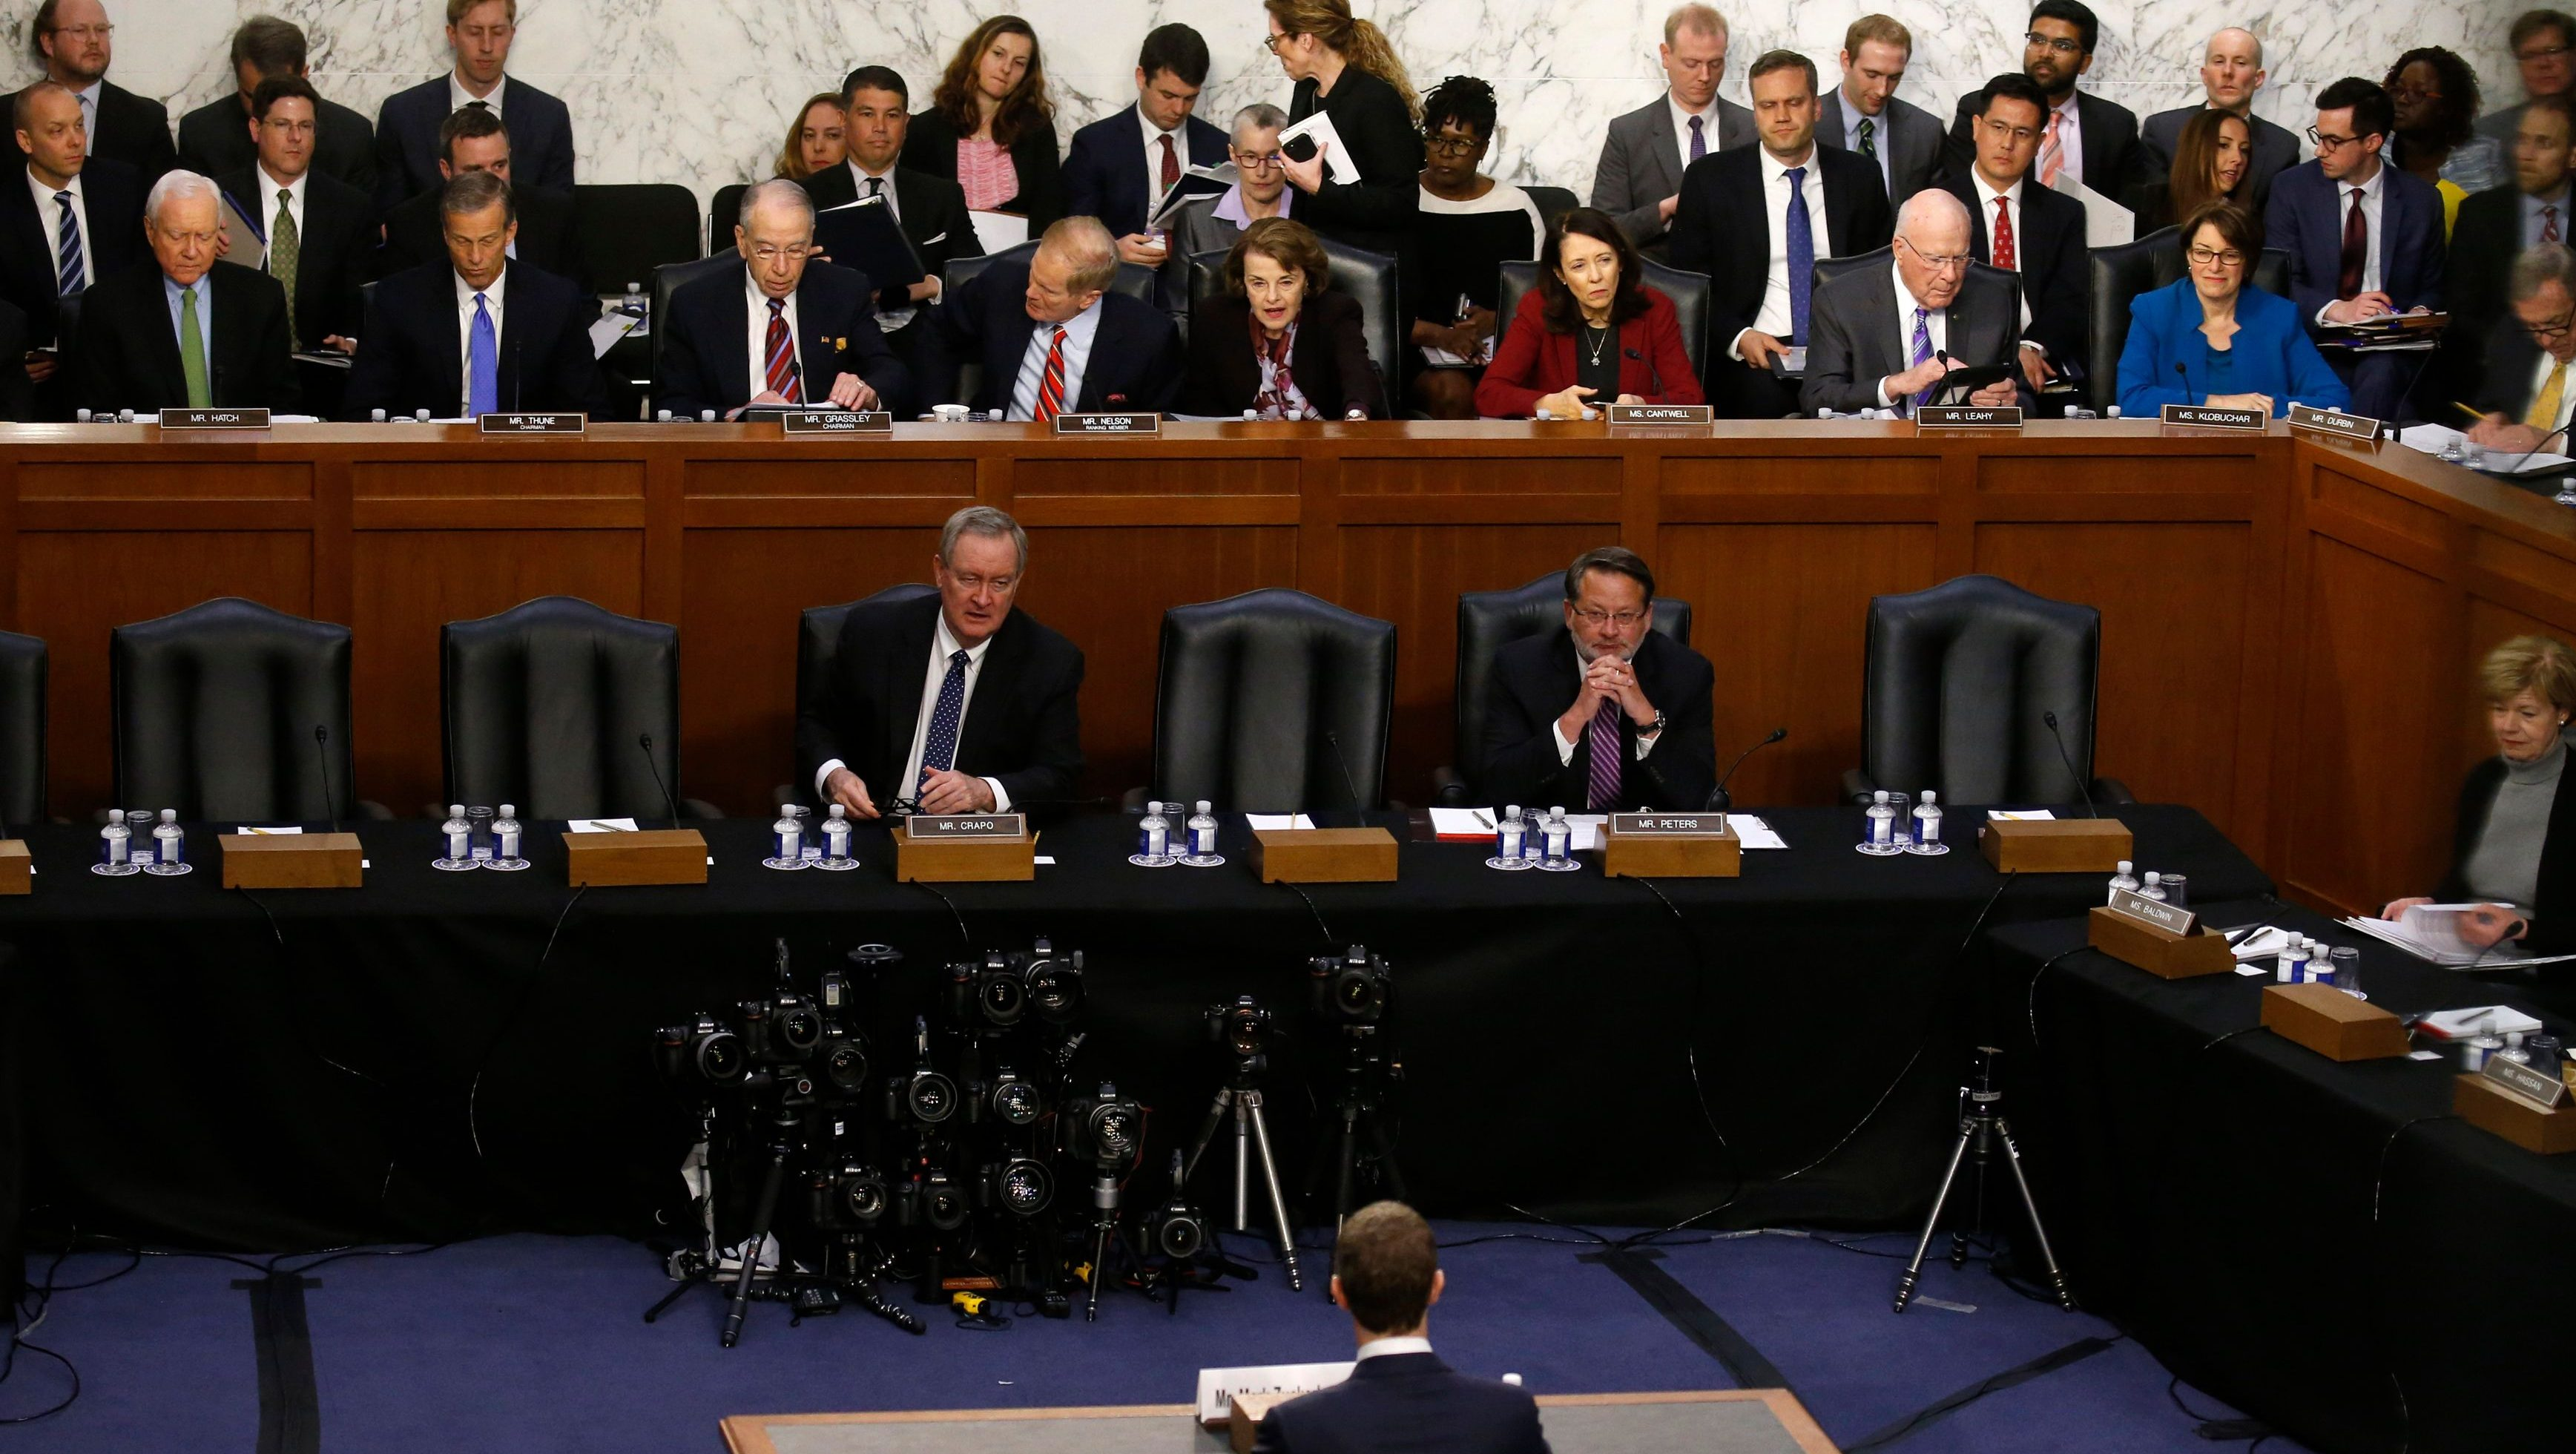 Facebook CEO Mark Zuckerberg testifies before a Senate Judiciary and Commerce Committees joint hearing regarding the company's use and protection of user data, on Capitol Hill in Washington, U.S., April 10, 2018.